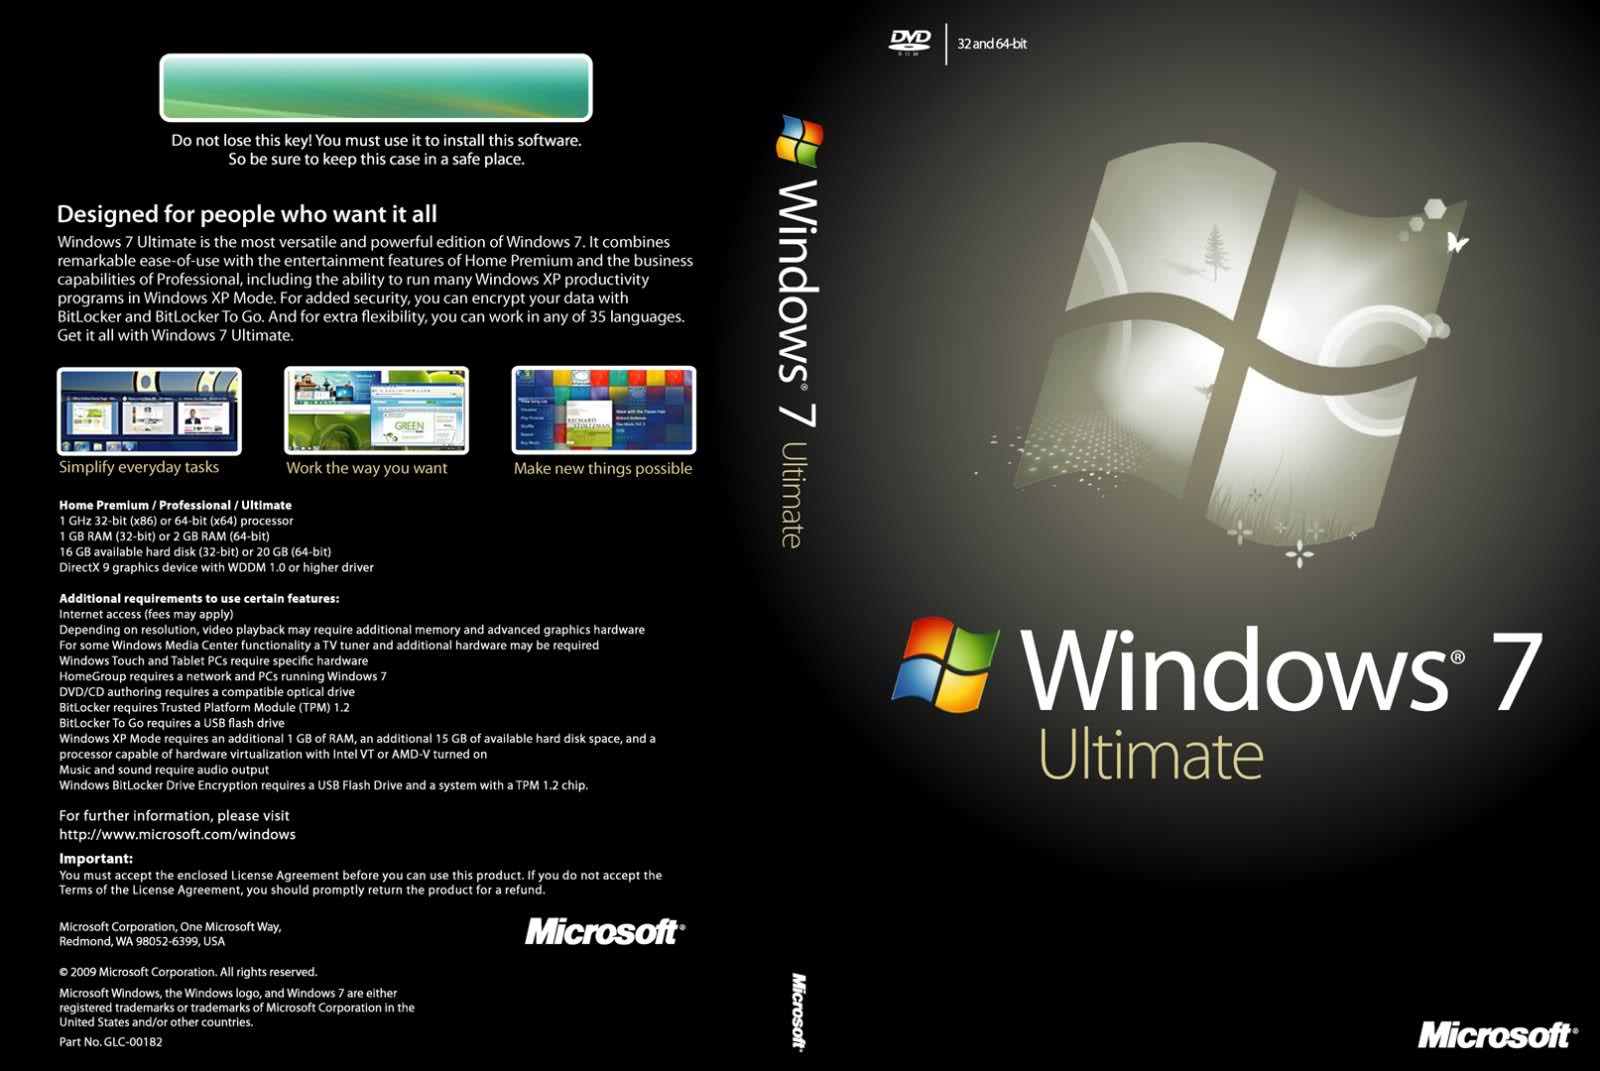 windows 7 ultimate 32bit product key free download